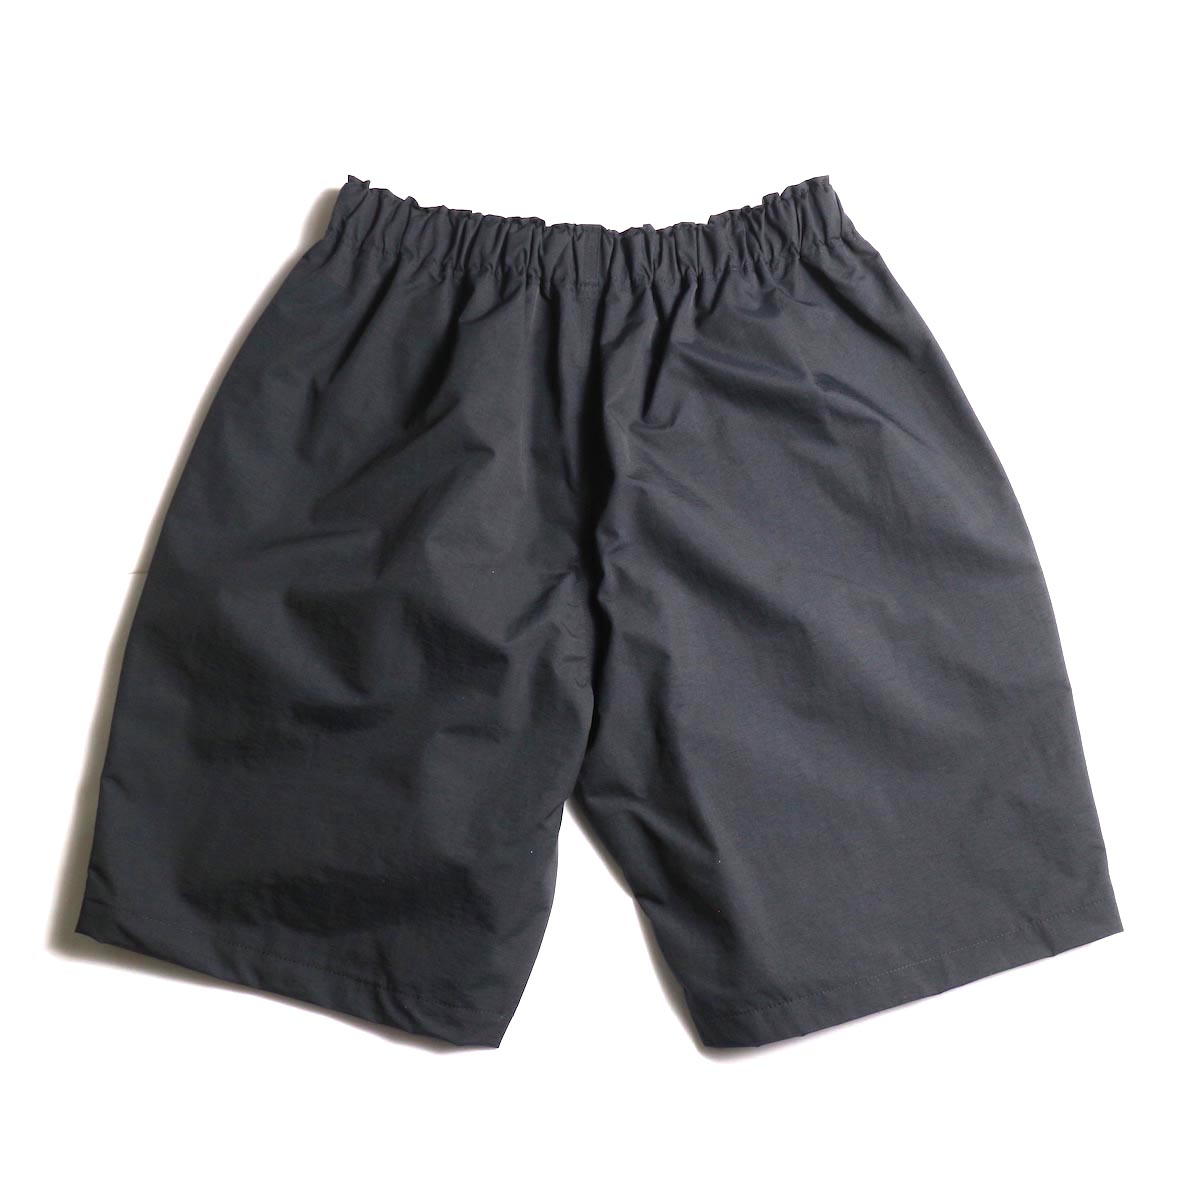 SOUTH2 WEST8 / Belted Center Seam Short -Nylon Tussore (Black) 背面